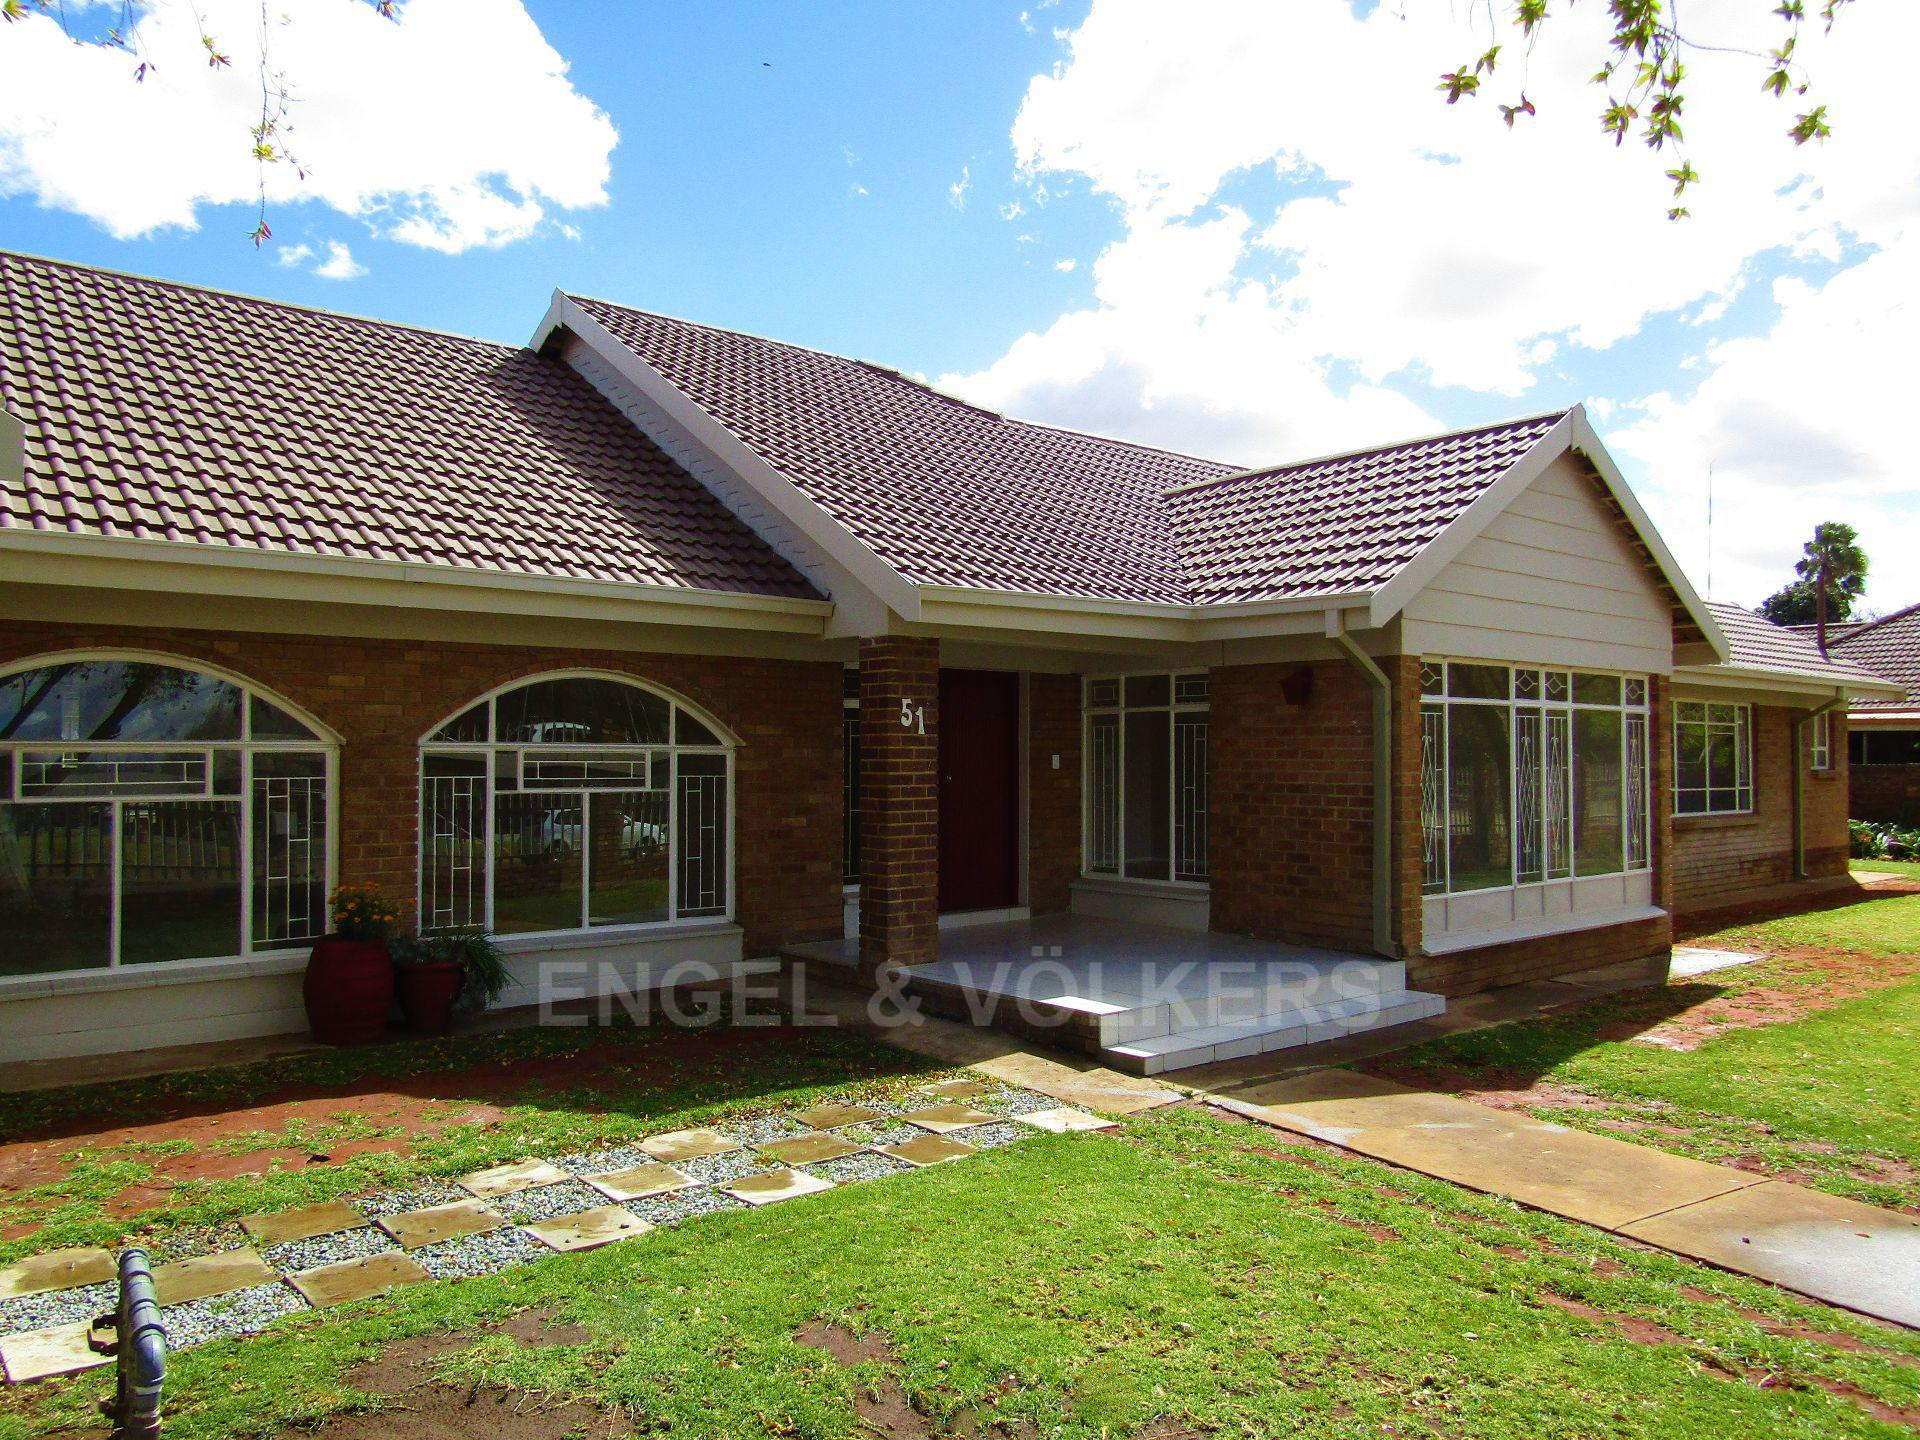 Potchefstroom Central property for sale. Ref No: 13522202. Picture no 1